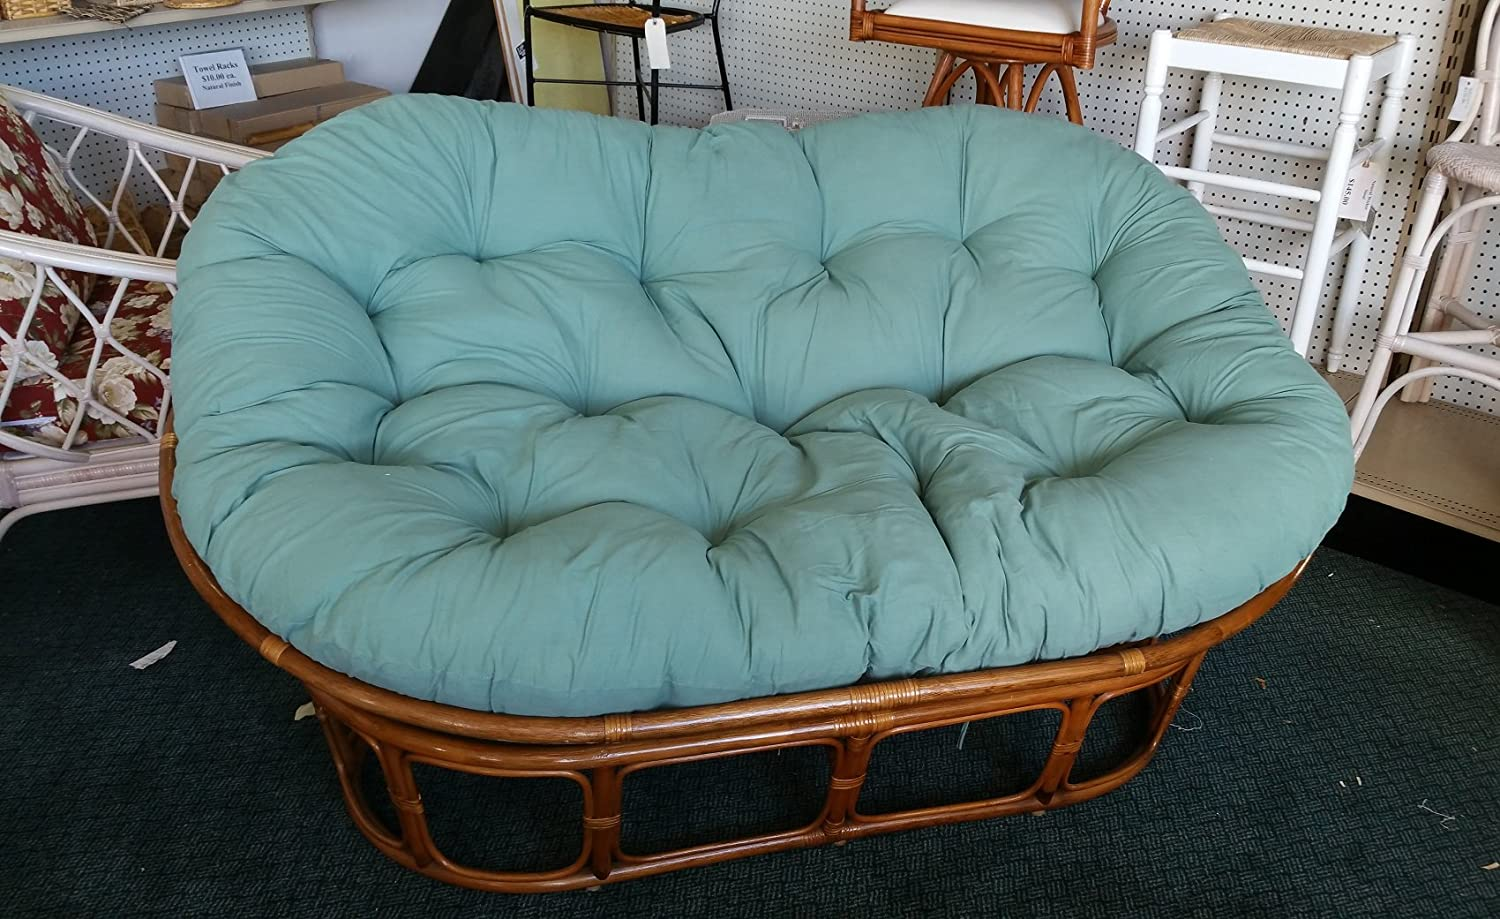 Papasan Loveseat - Classic Indoor Rattan Furniture NIB (Pecan-Hunter Green)